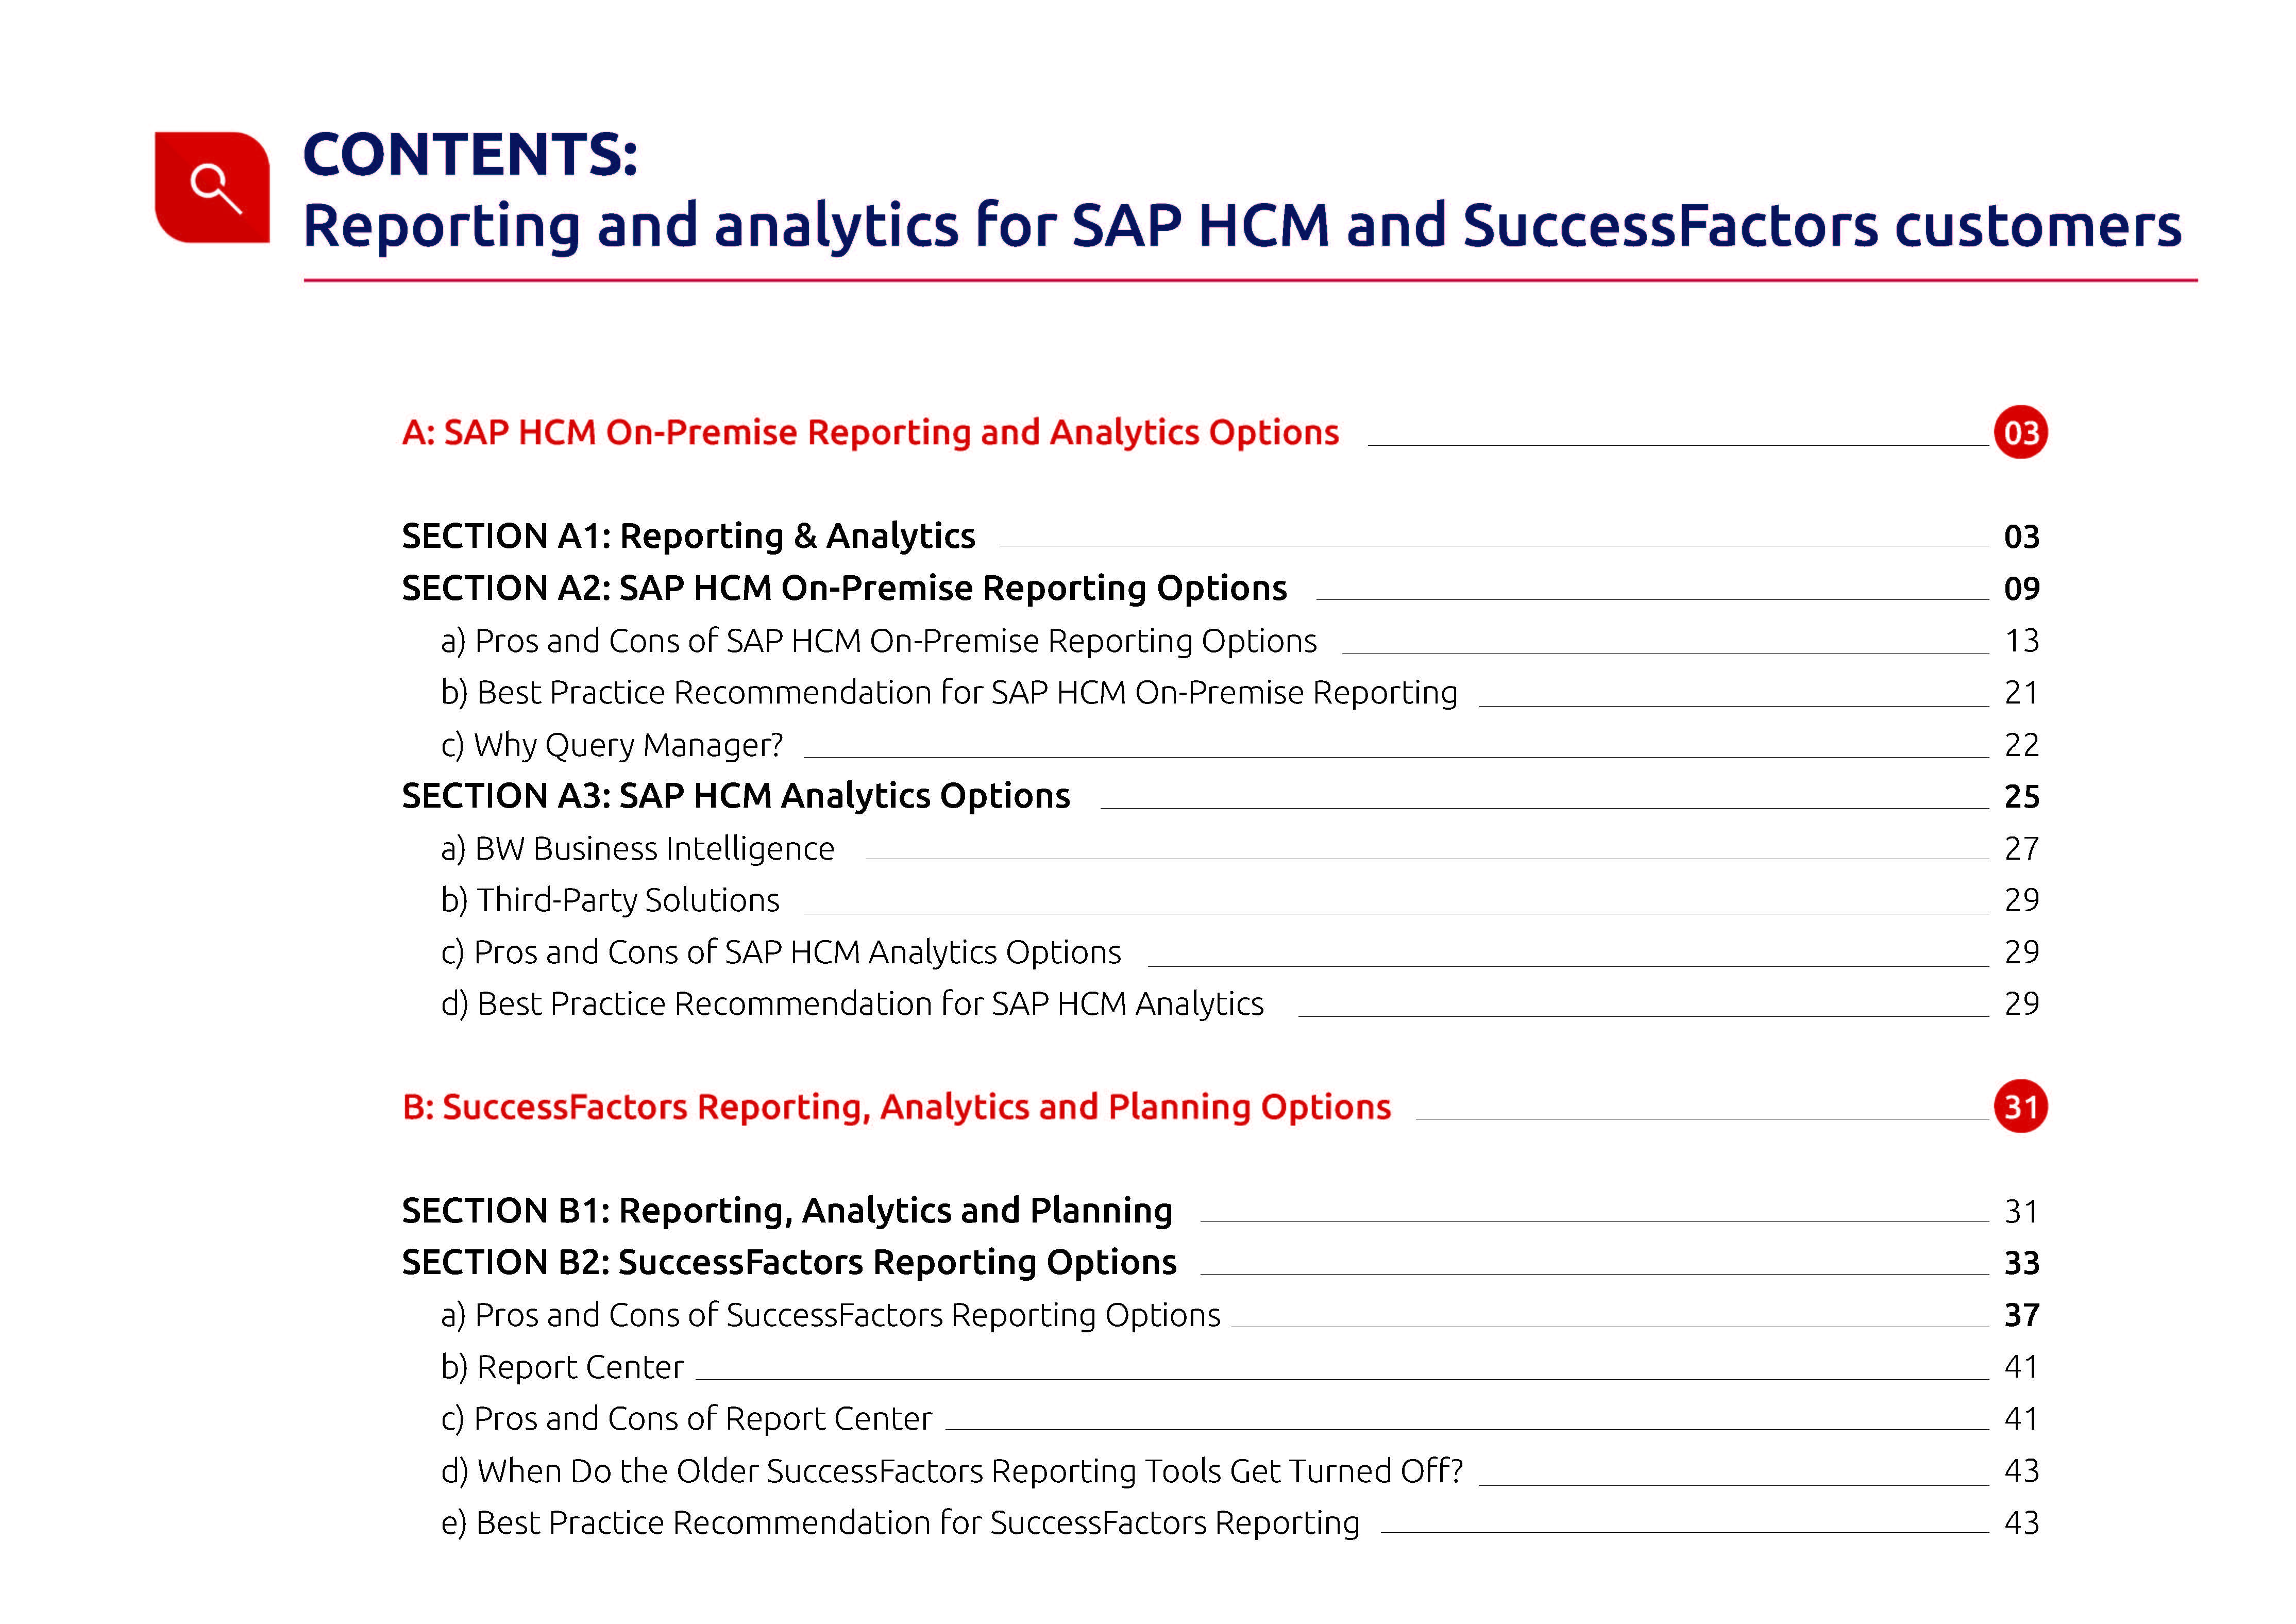 Reporting and analytics for SAP HCM and SuccessFactors customers